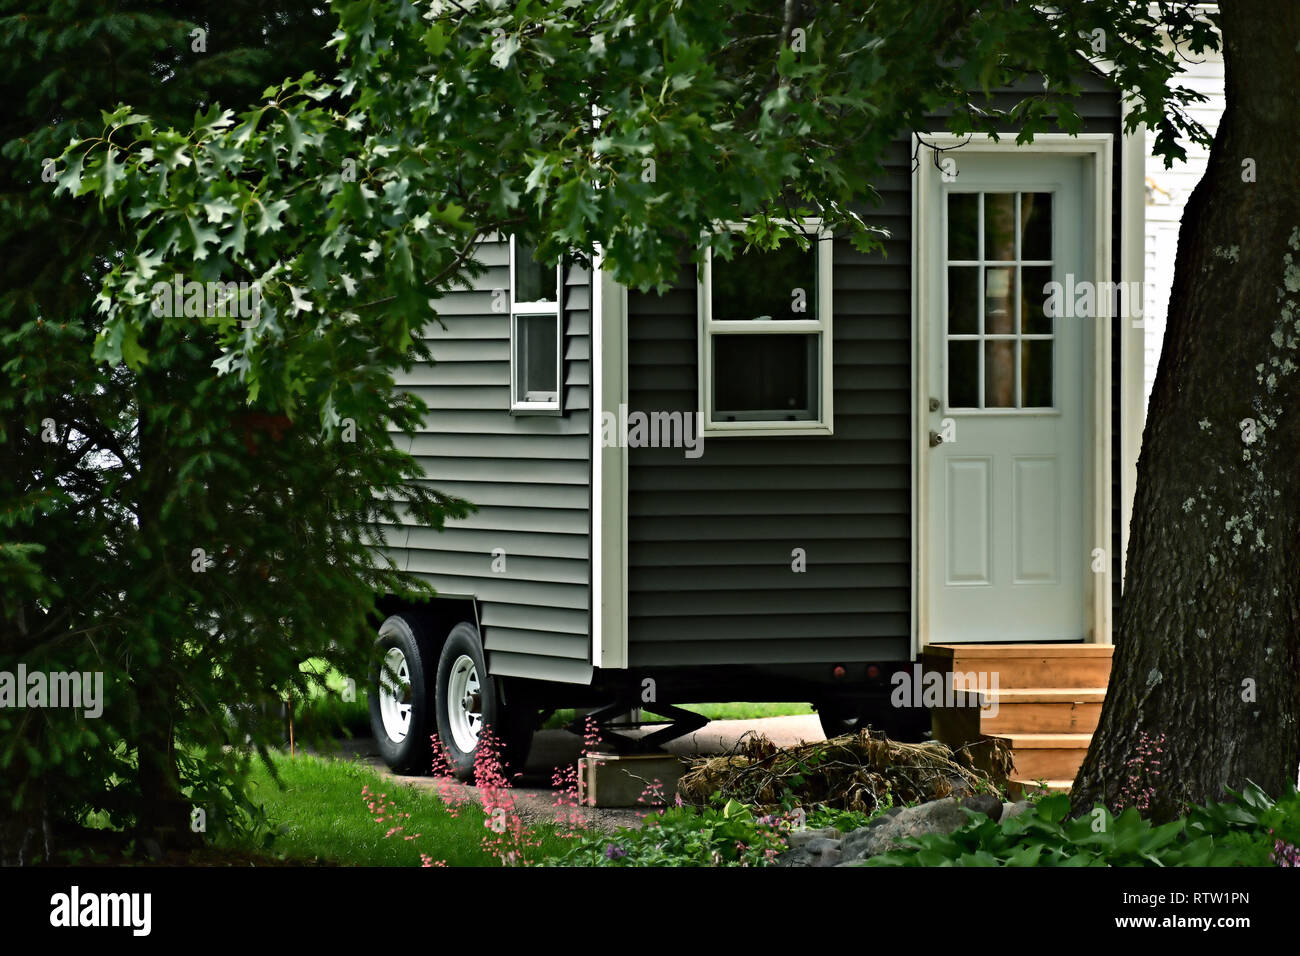 Closeup exterior view of an affordable eco friendly tiny house on wheels - Stock Image